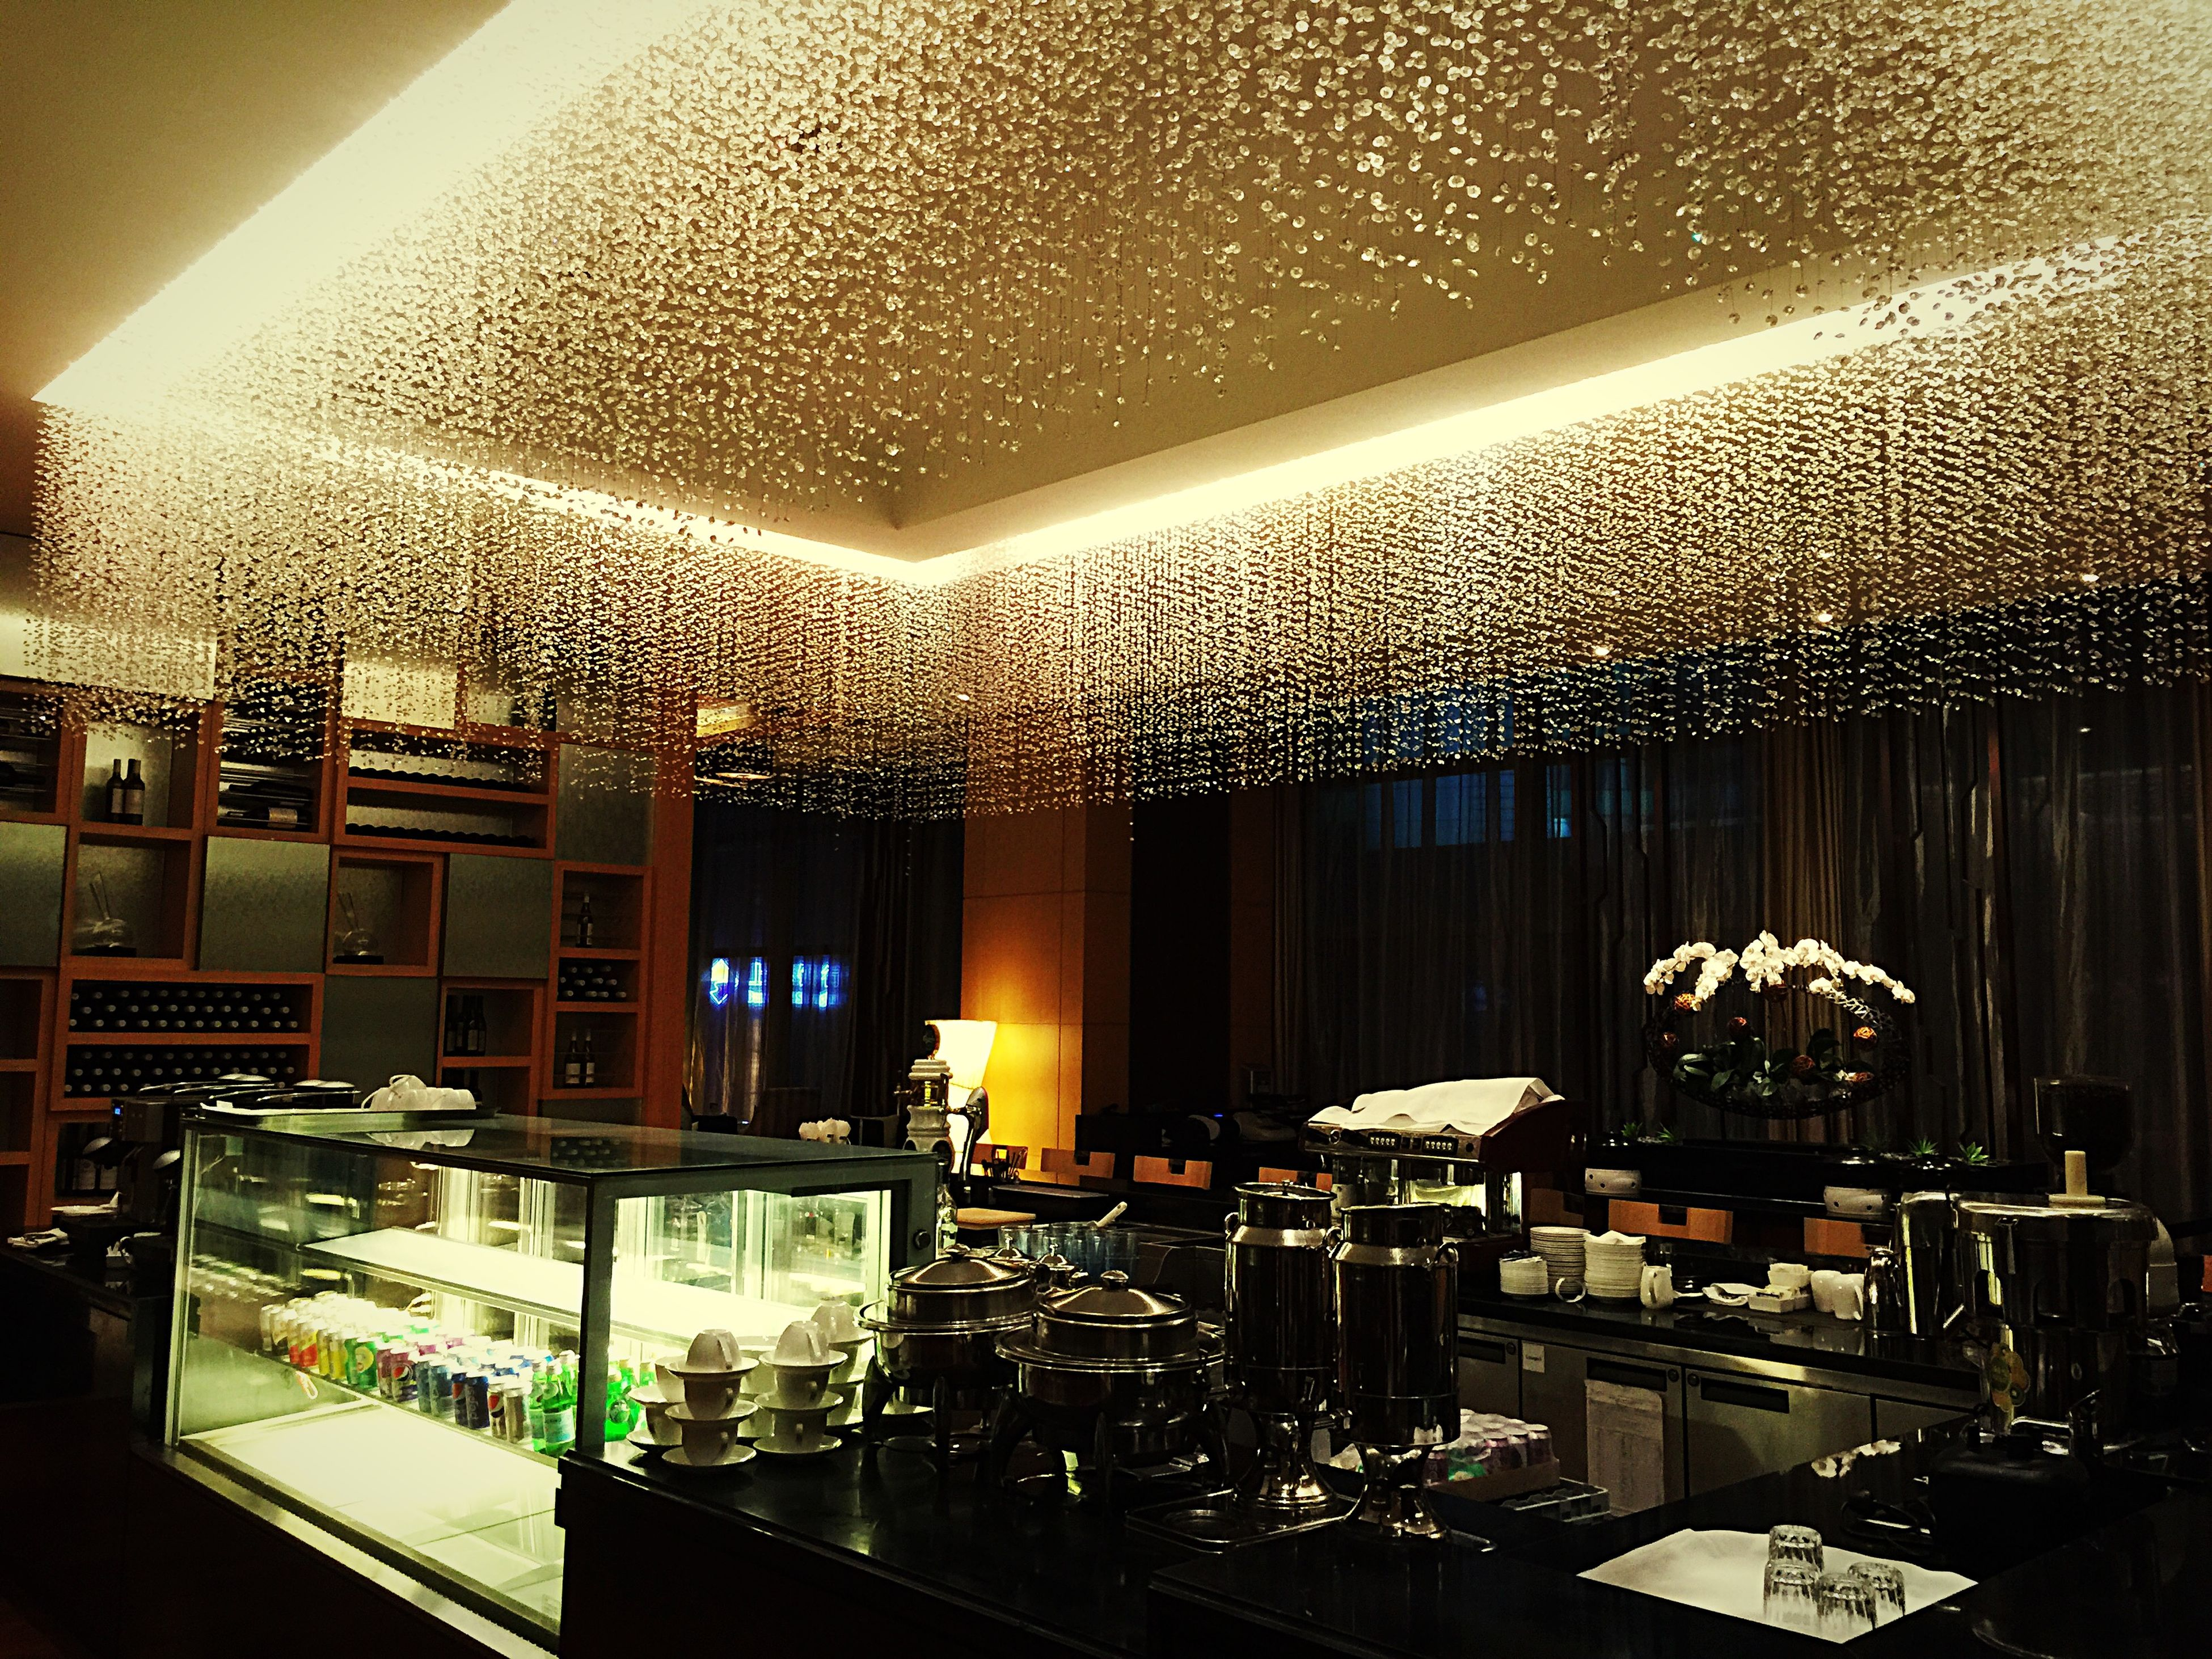 indoors, window, lighting equipment, ceiling, illuminated, glass - material, table, chair, architecture, built structure, transparent, home interior, hanging, empty, electric lamp, absence, restaurant, no people, decoration, interior